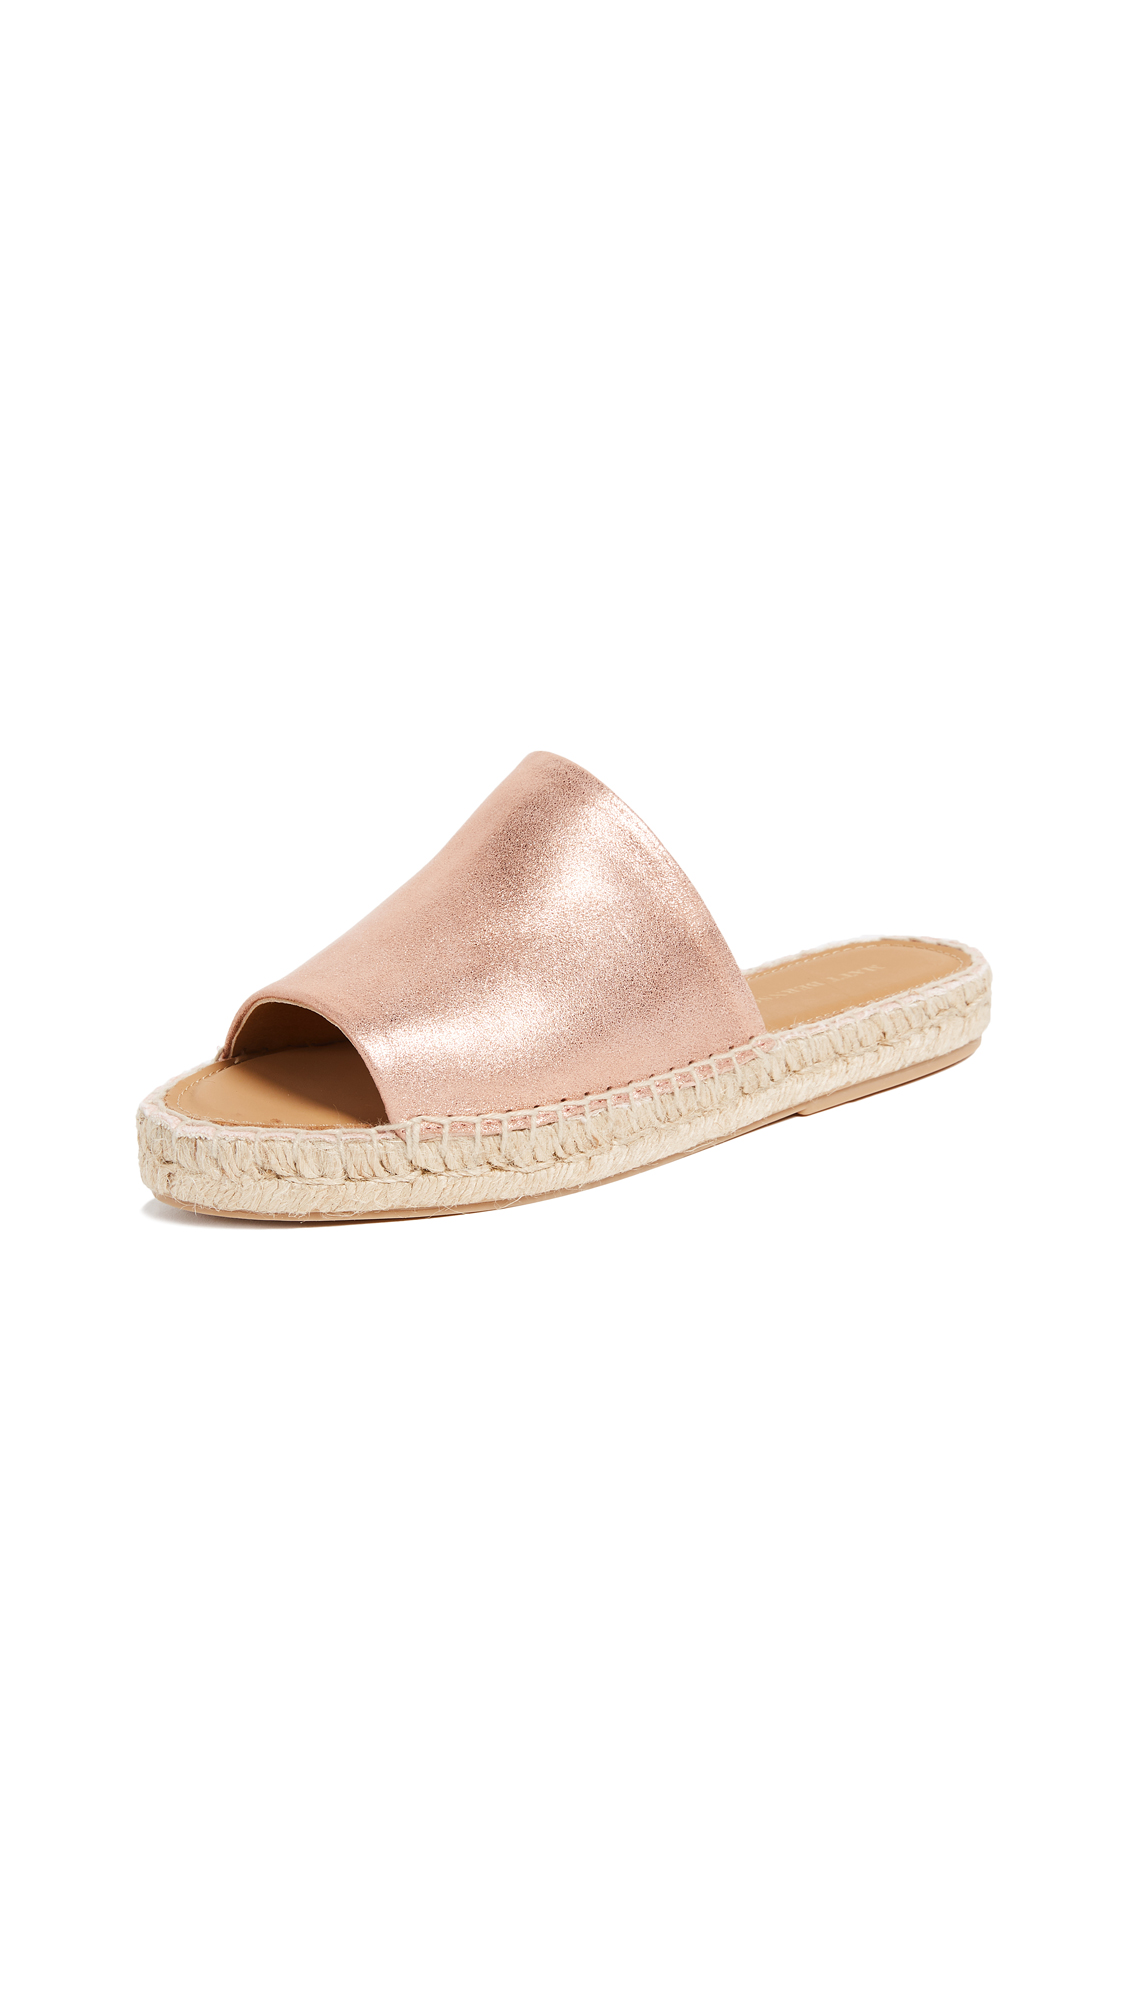 Matt Bernson Palma Slides - Rose Gold